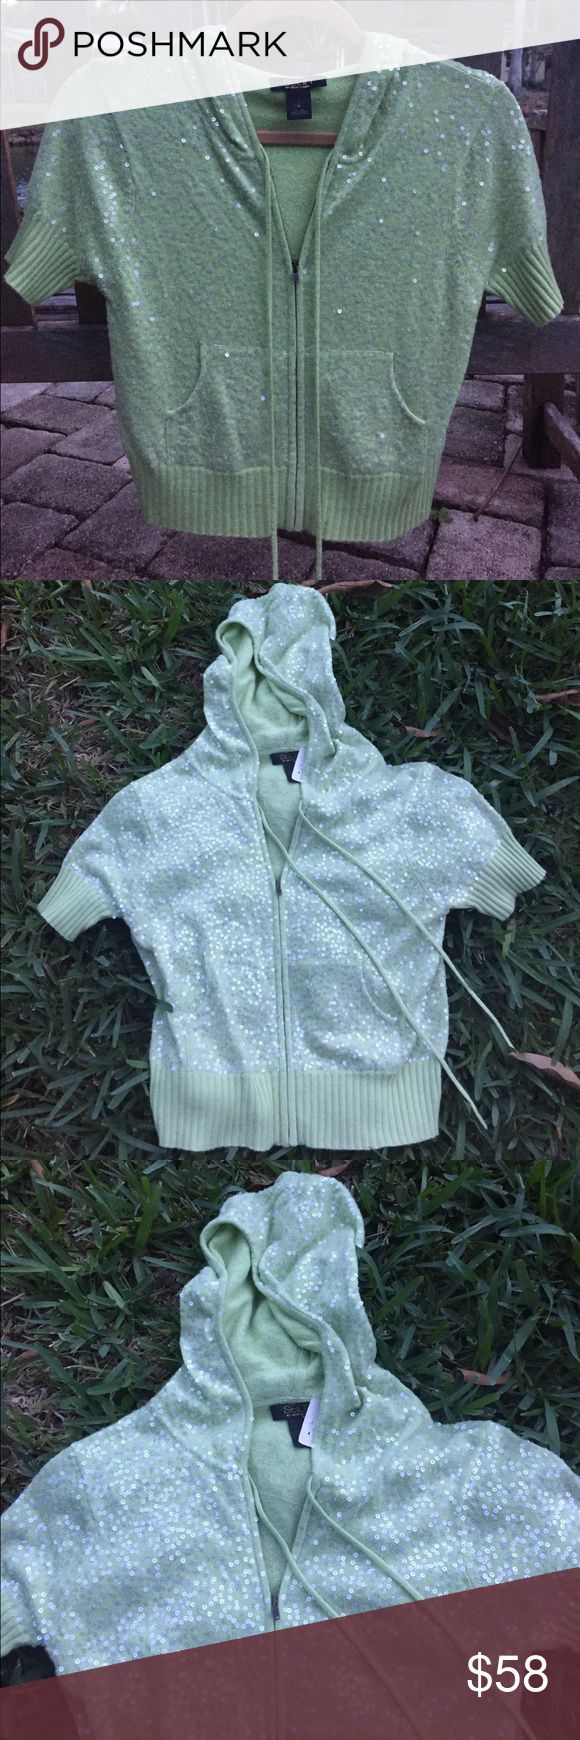 sequined silk & cashmere hooded sweater sean by Sean Combs lime green, sequined, hooded sweater. 💚💚💚 Short sleeves.. 55% Silk, 45% cashmere. Excellent condition, never worn. TJ Max tag attached... originally about $200. Adorable!!! 💚💚💚 Sean John Sweaters